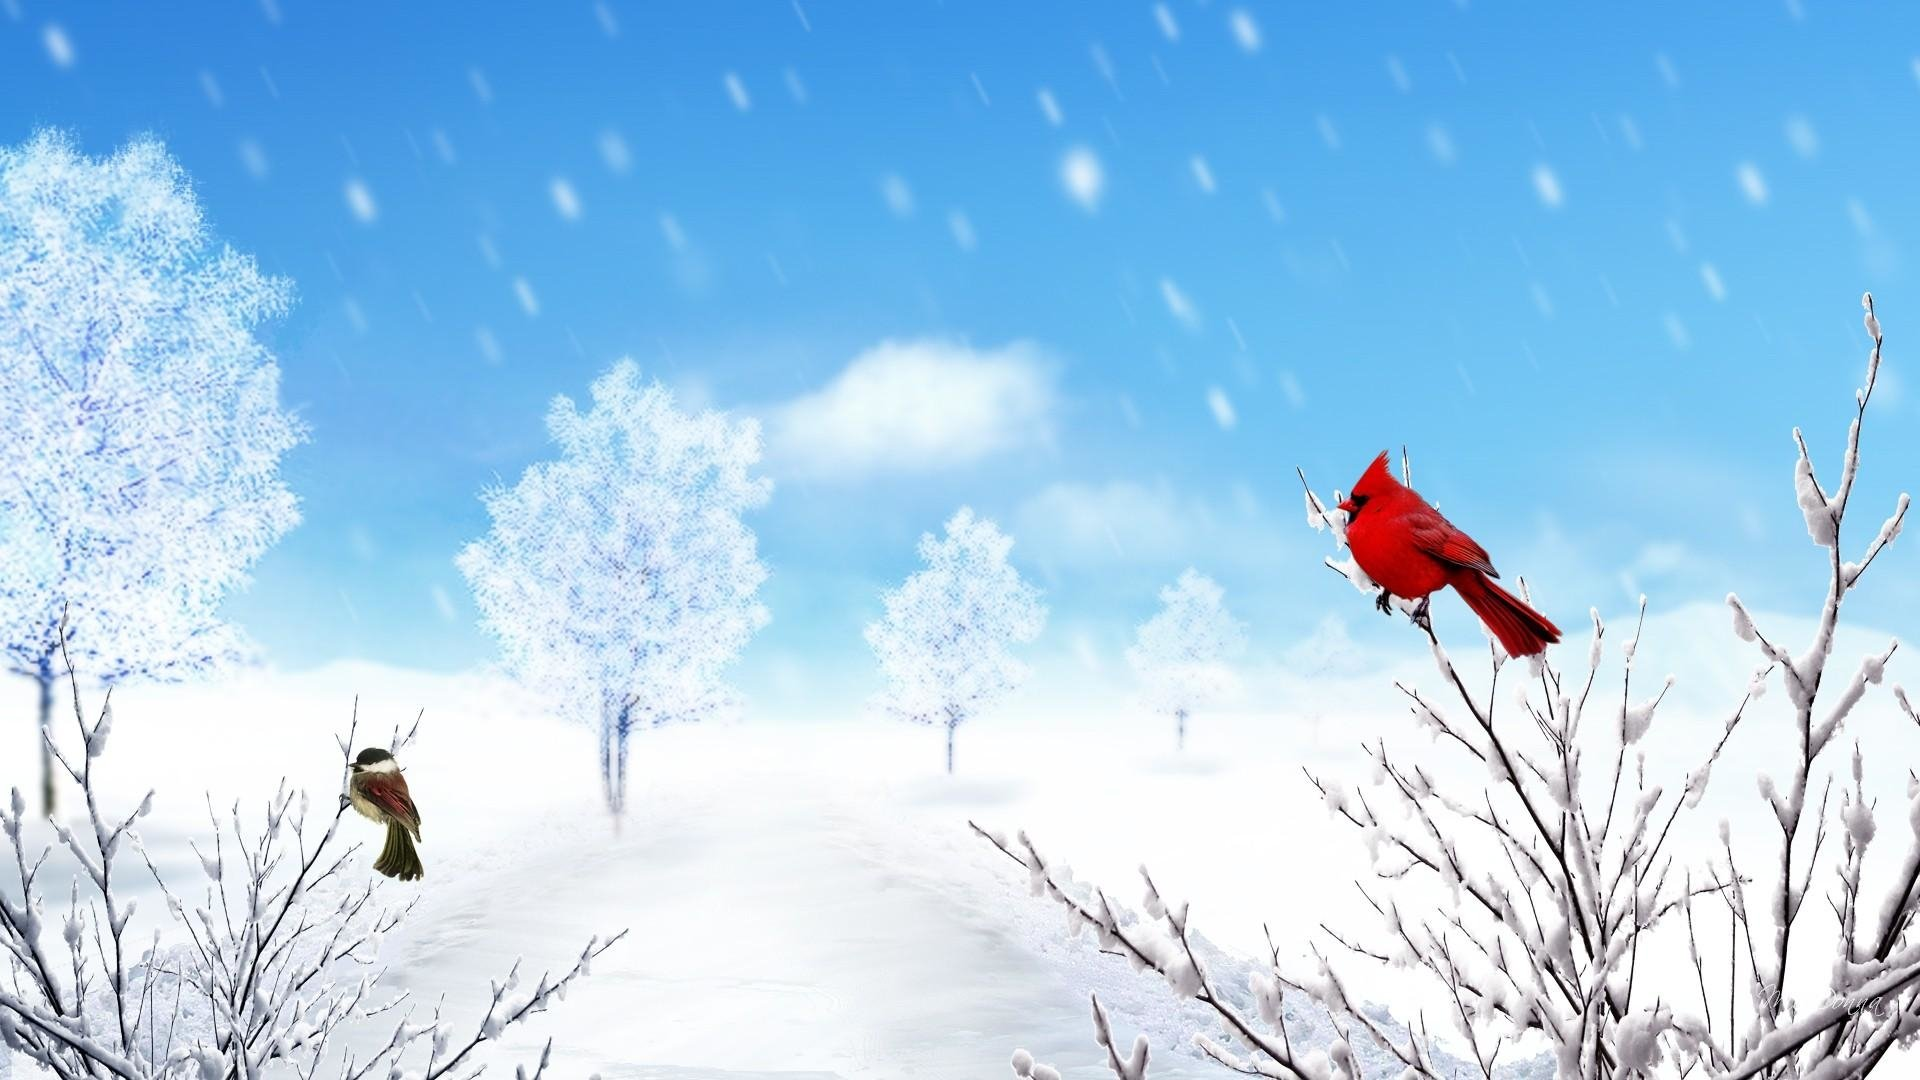 Birds in winter hd wallpaper background image - Winter cardinal background ...